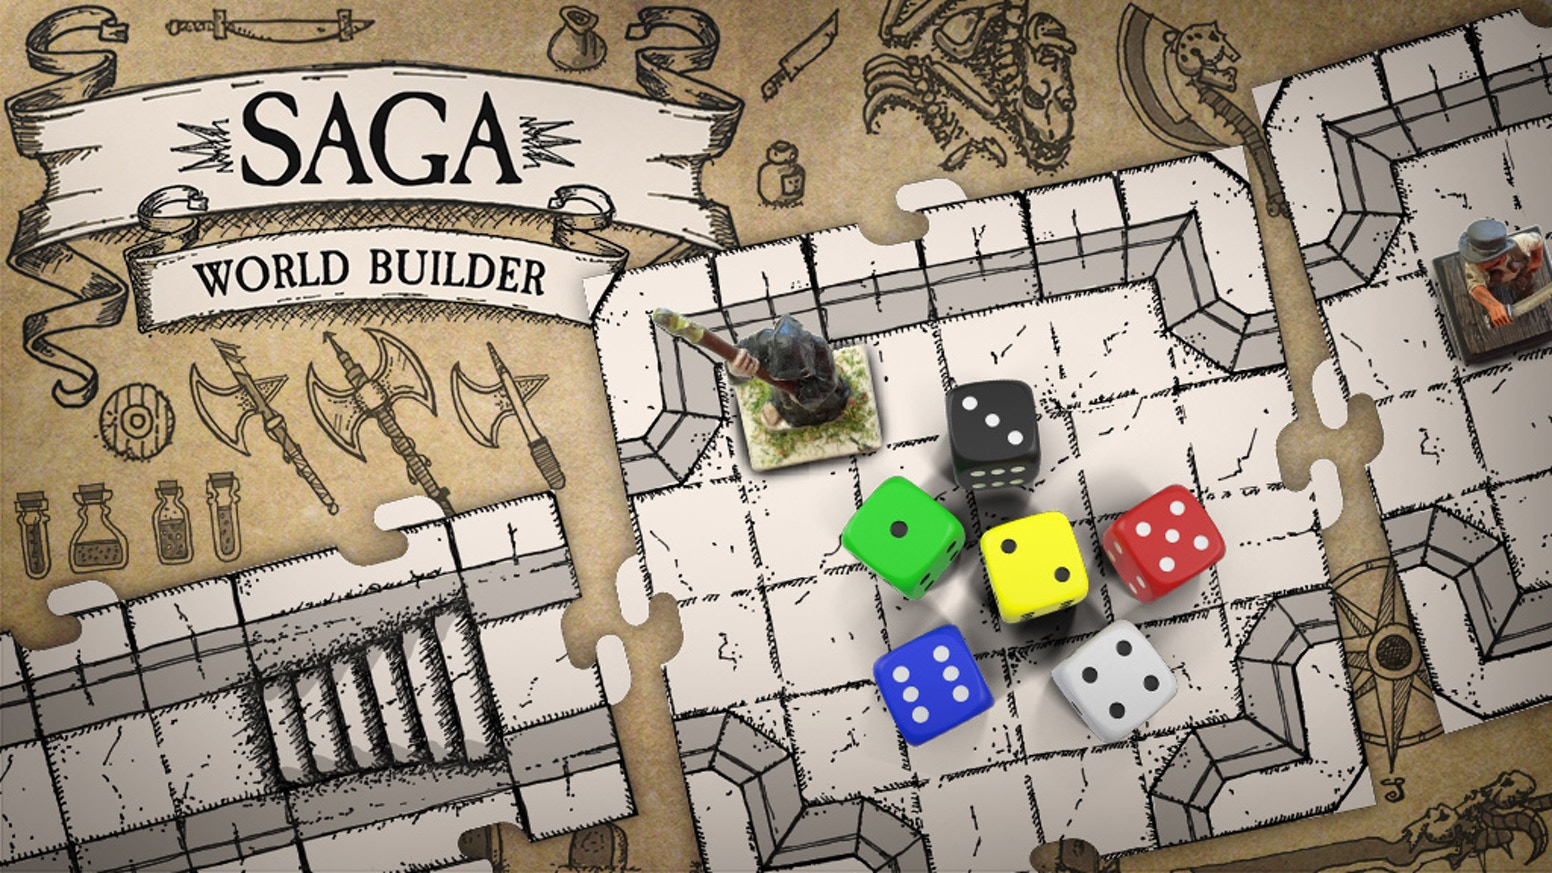 Saga world builder modular tiles for tabletop and dd games by saga create maps for penpaper role playing dd and miniature games dungeon gumiabroncs Gallery